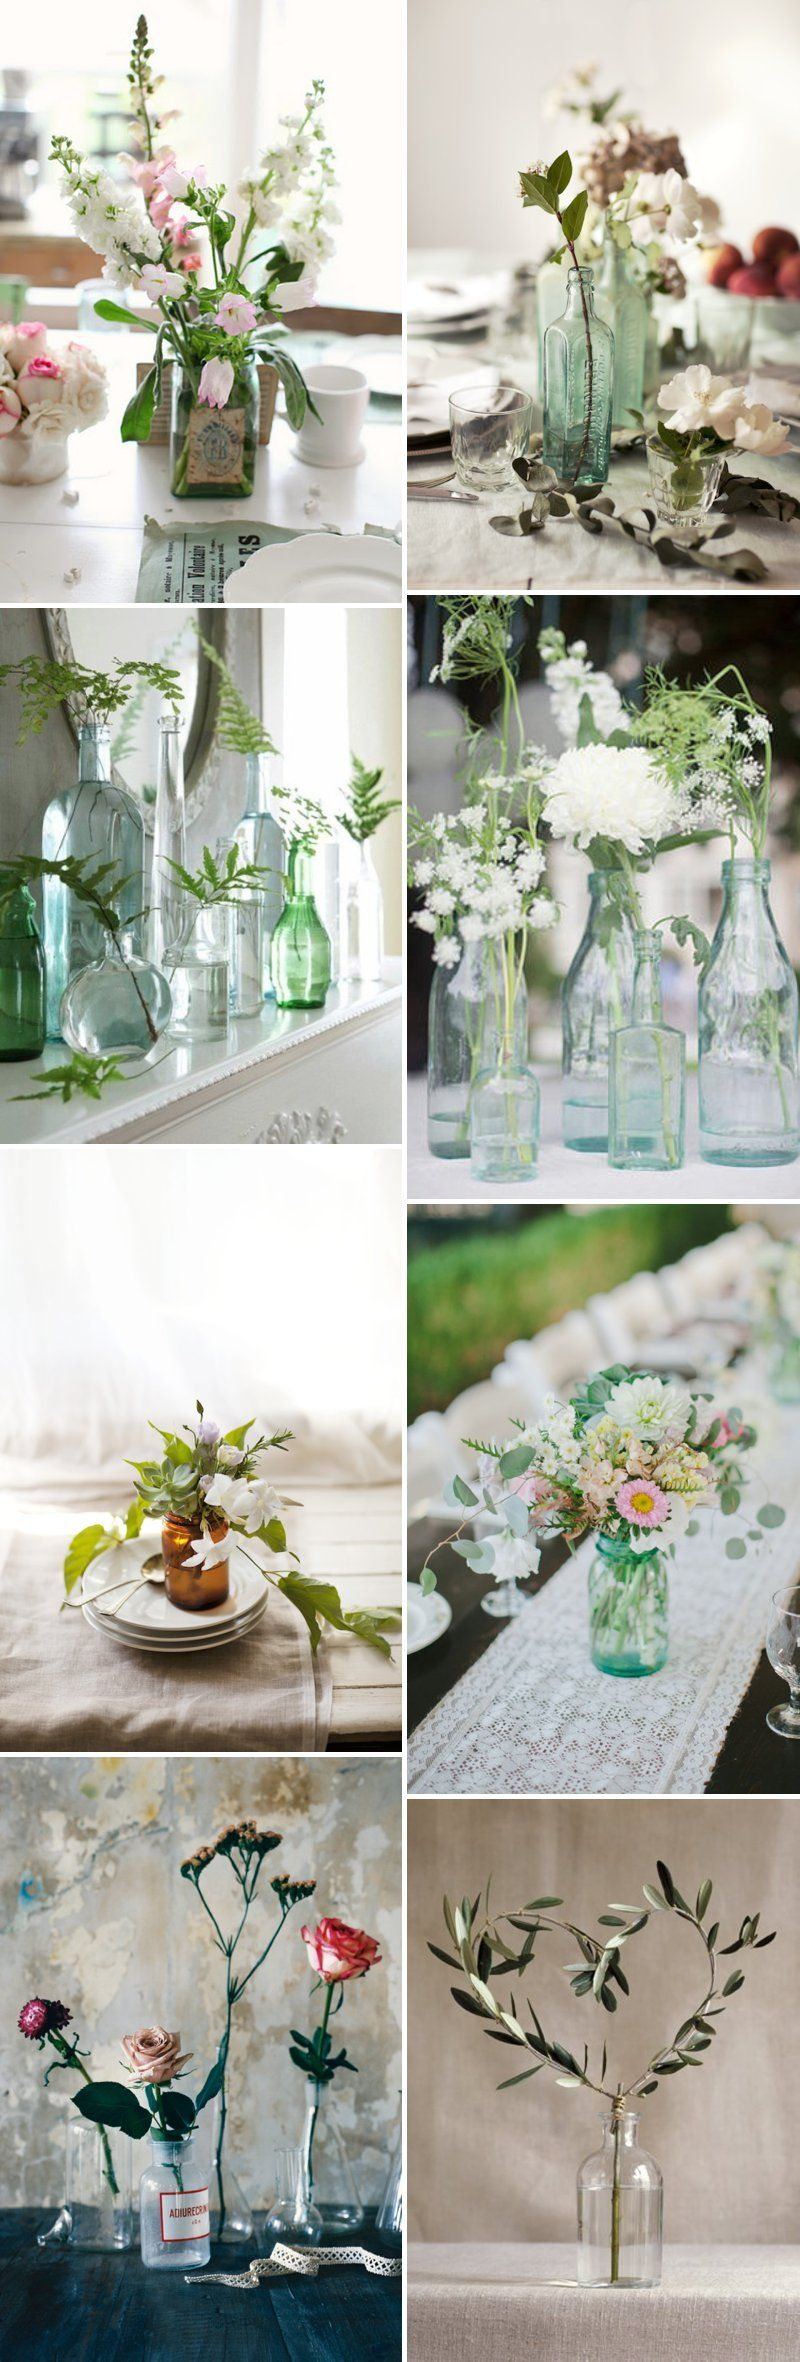 Wedding decorations on tables  Four Trends For Grooms Heull Actually Want To Wear  Wedding